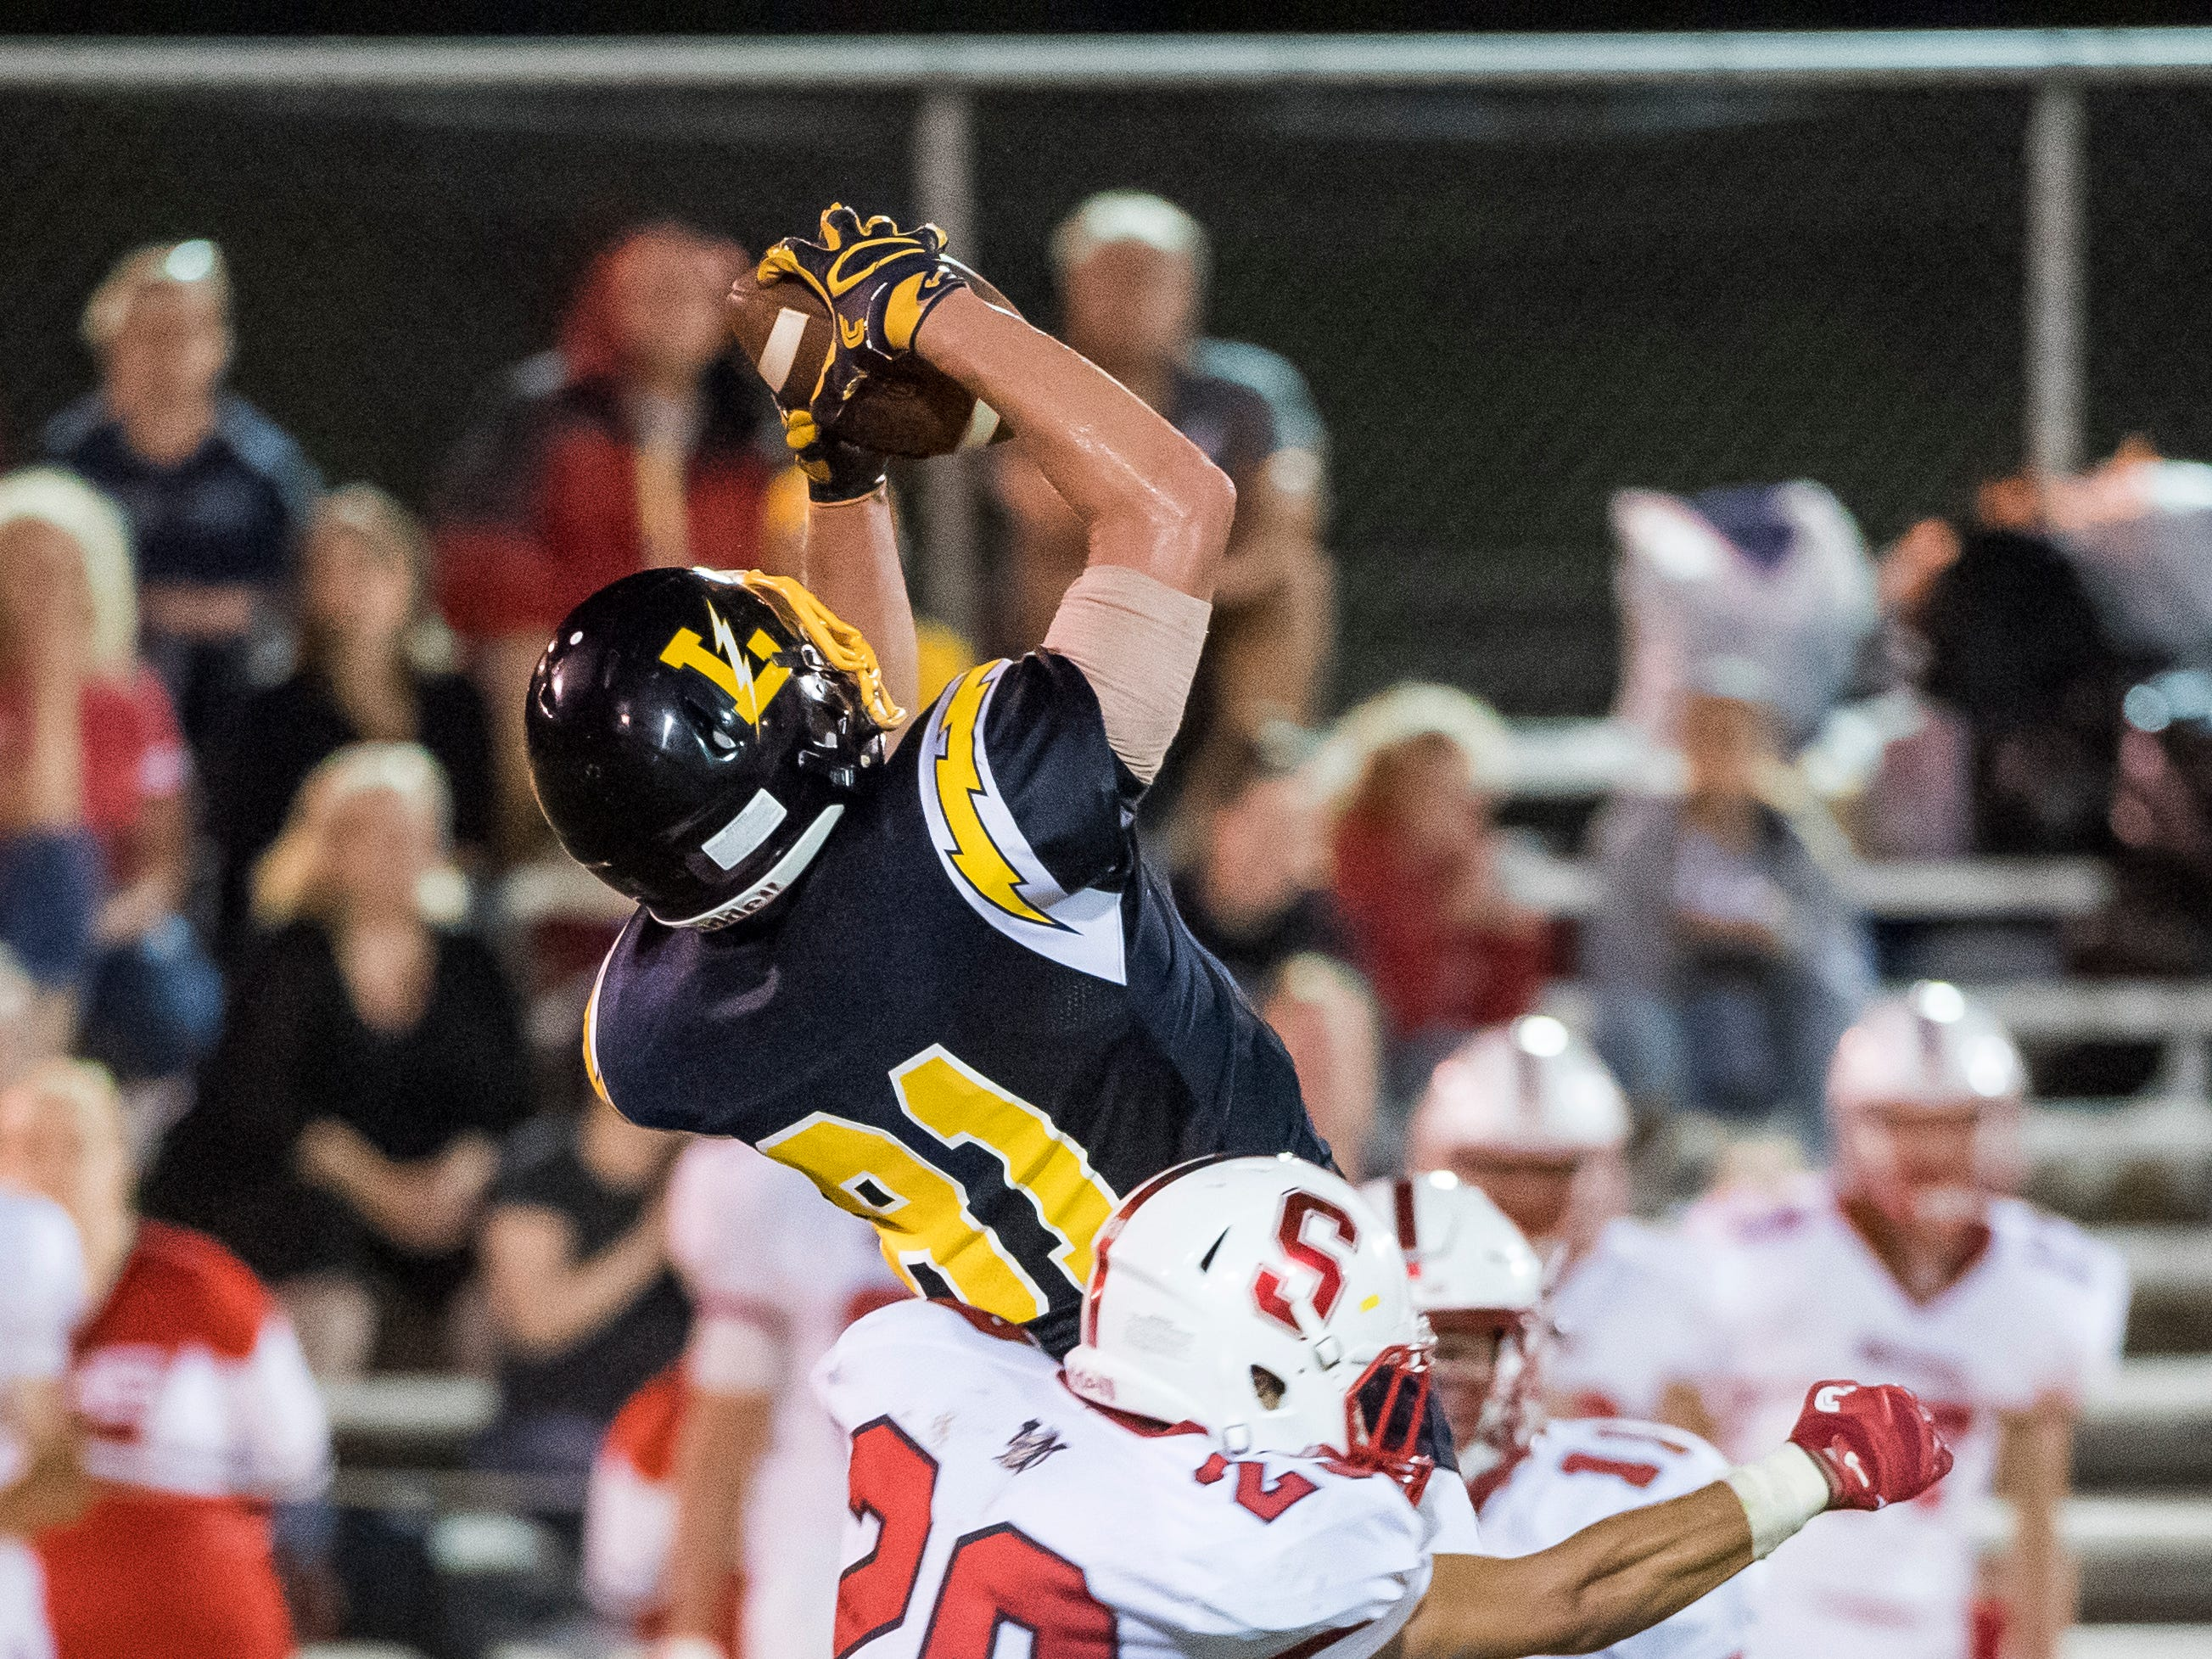 Littlestown's Brady McClintock jumps up to catch a pass from Jakob Lane during play against Susquehannock on Friday, August 31, 2018. The Bolts beat the Warriors 29-14.